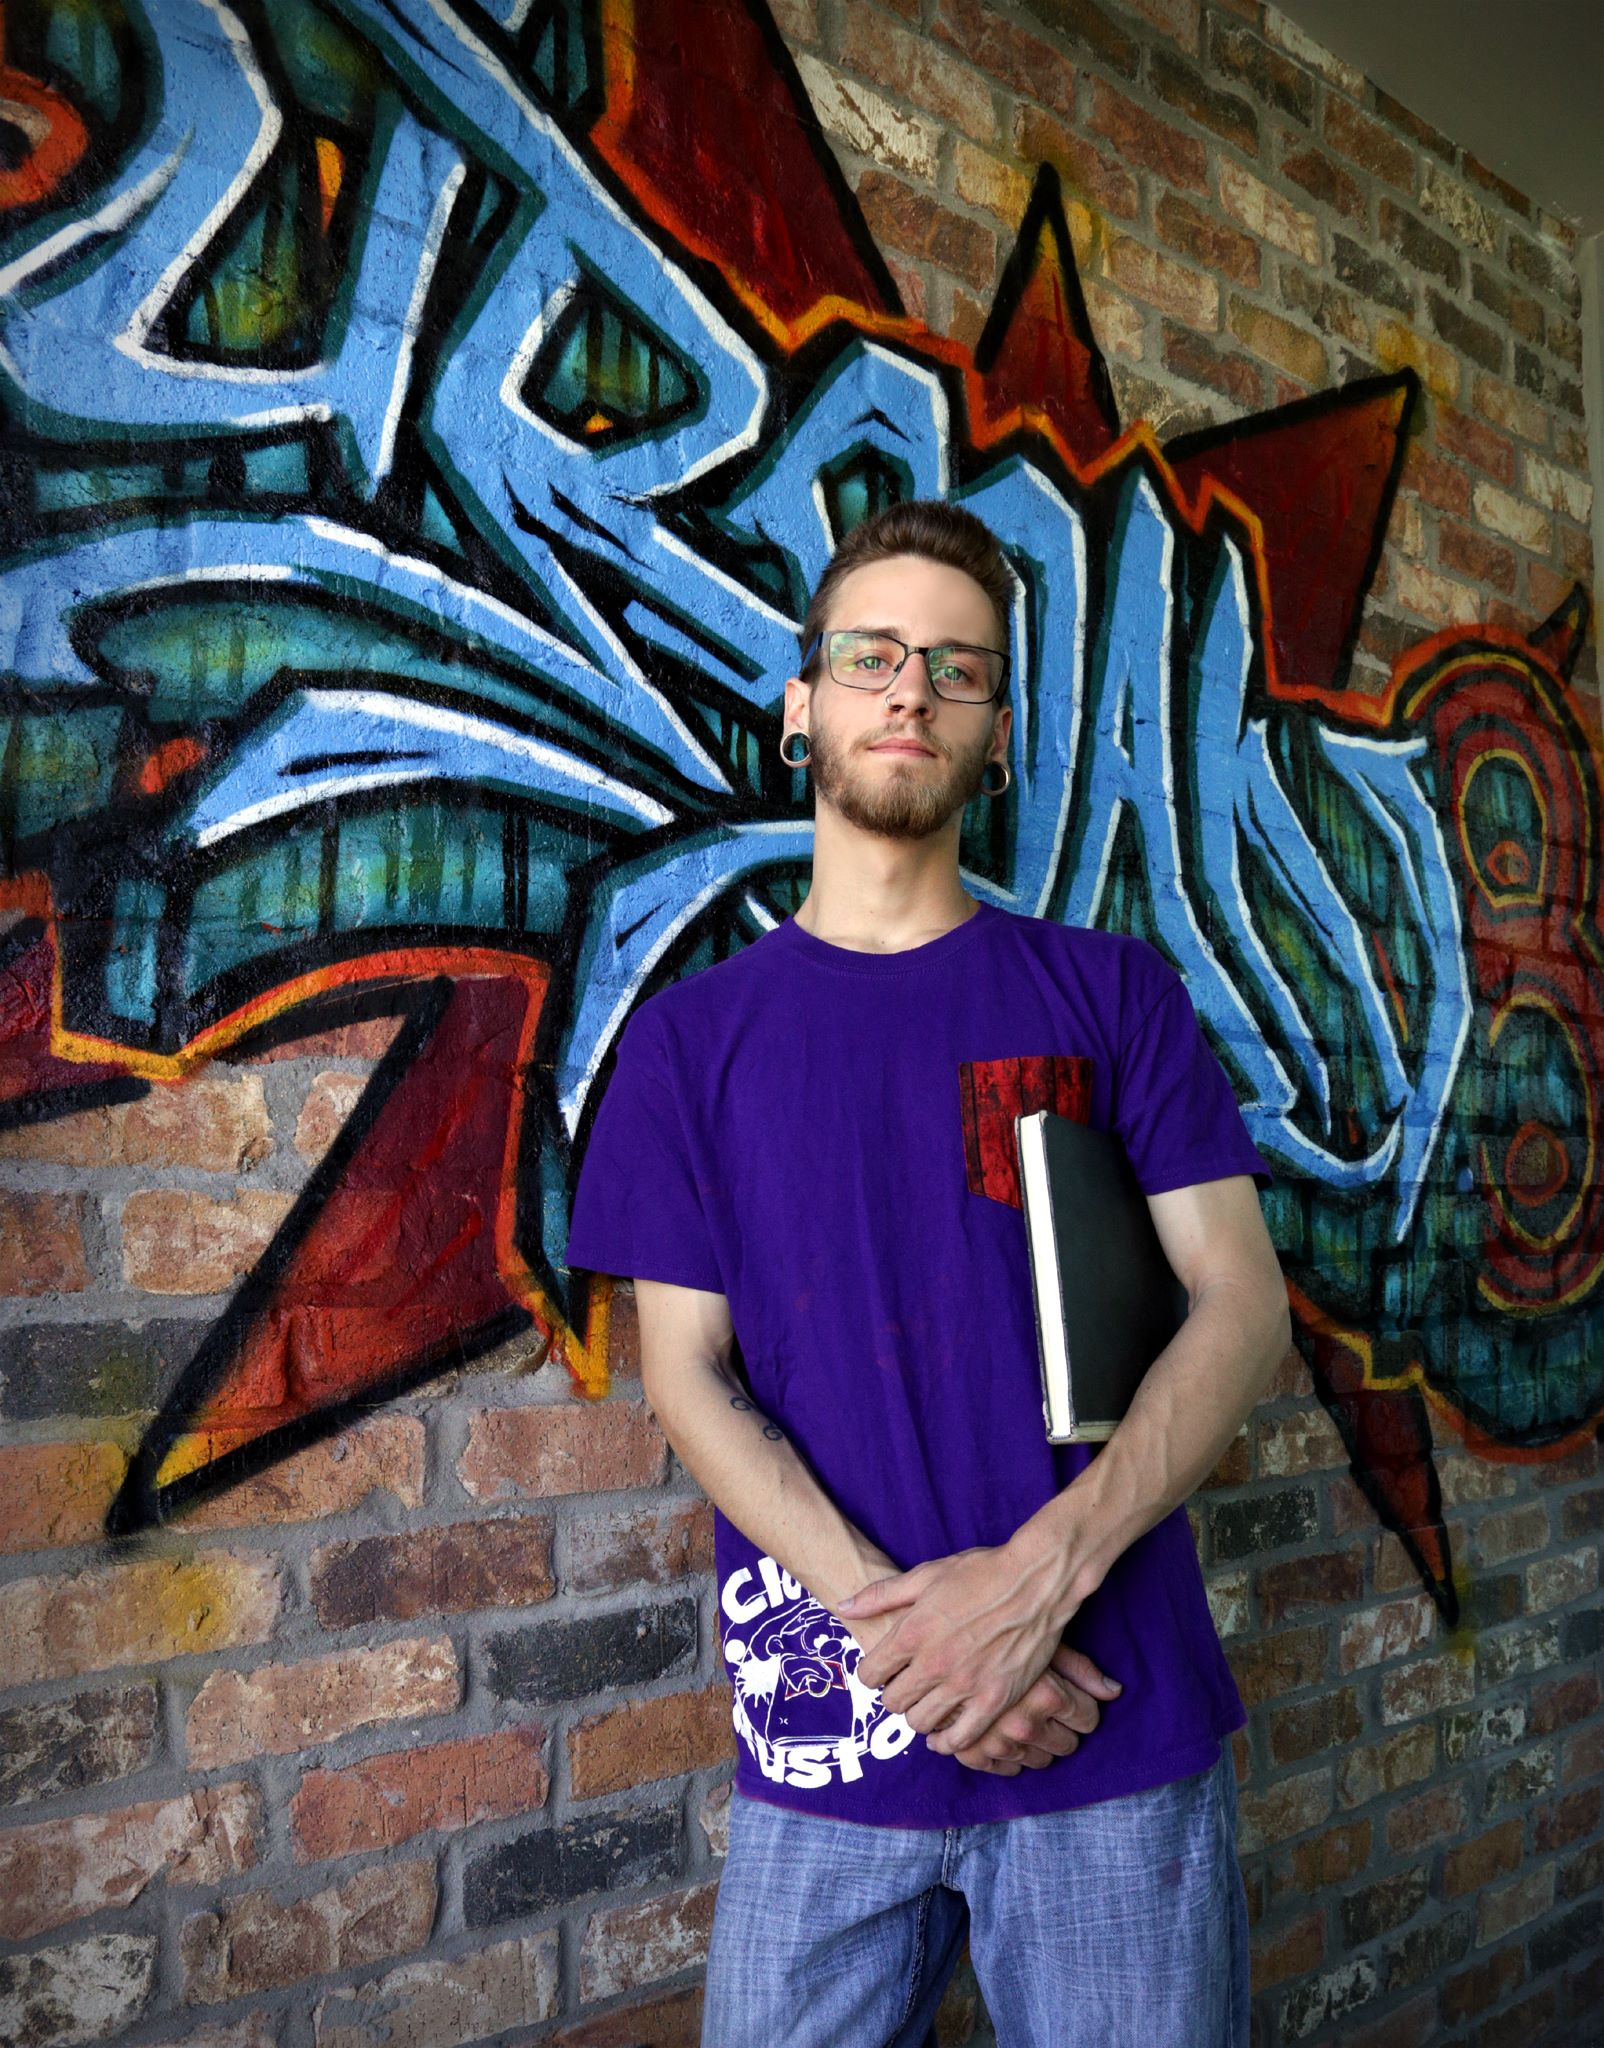 Graffiti artist Beau Raines